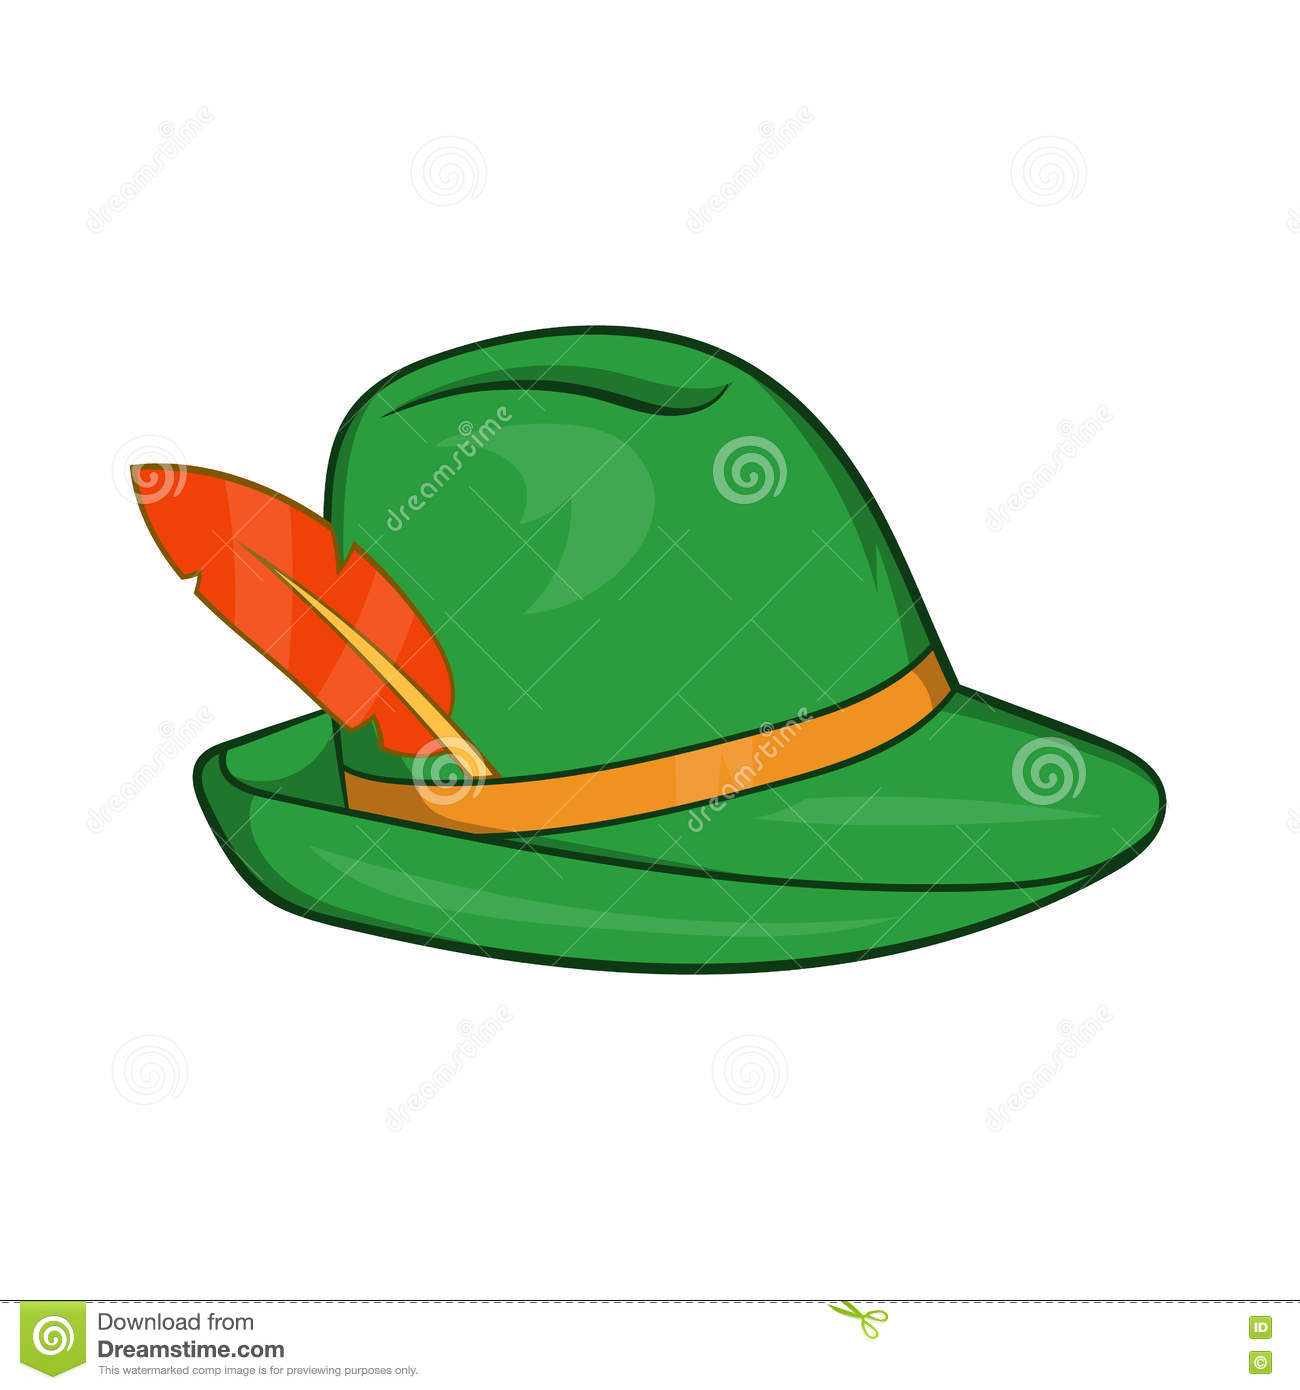 bb83281c451 Green hat with a feather icon in cartoon style on a white background